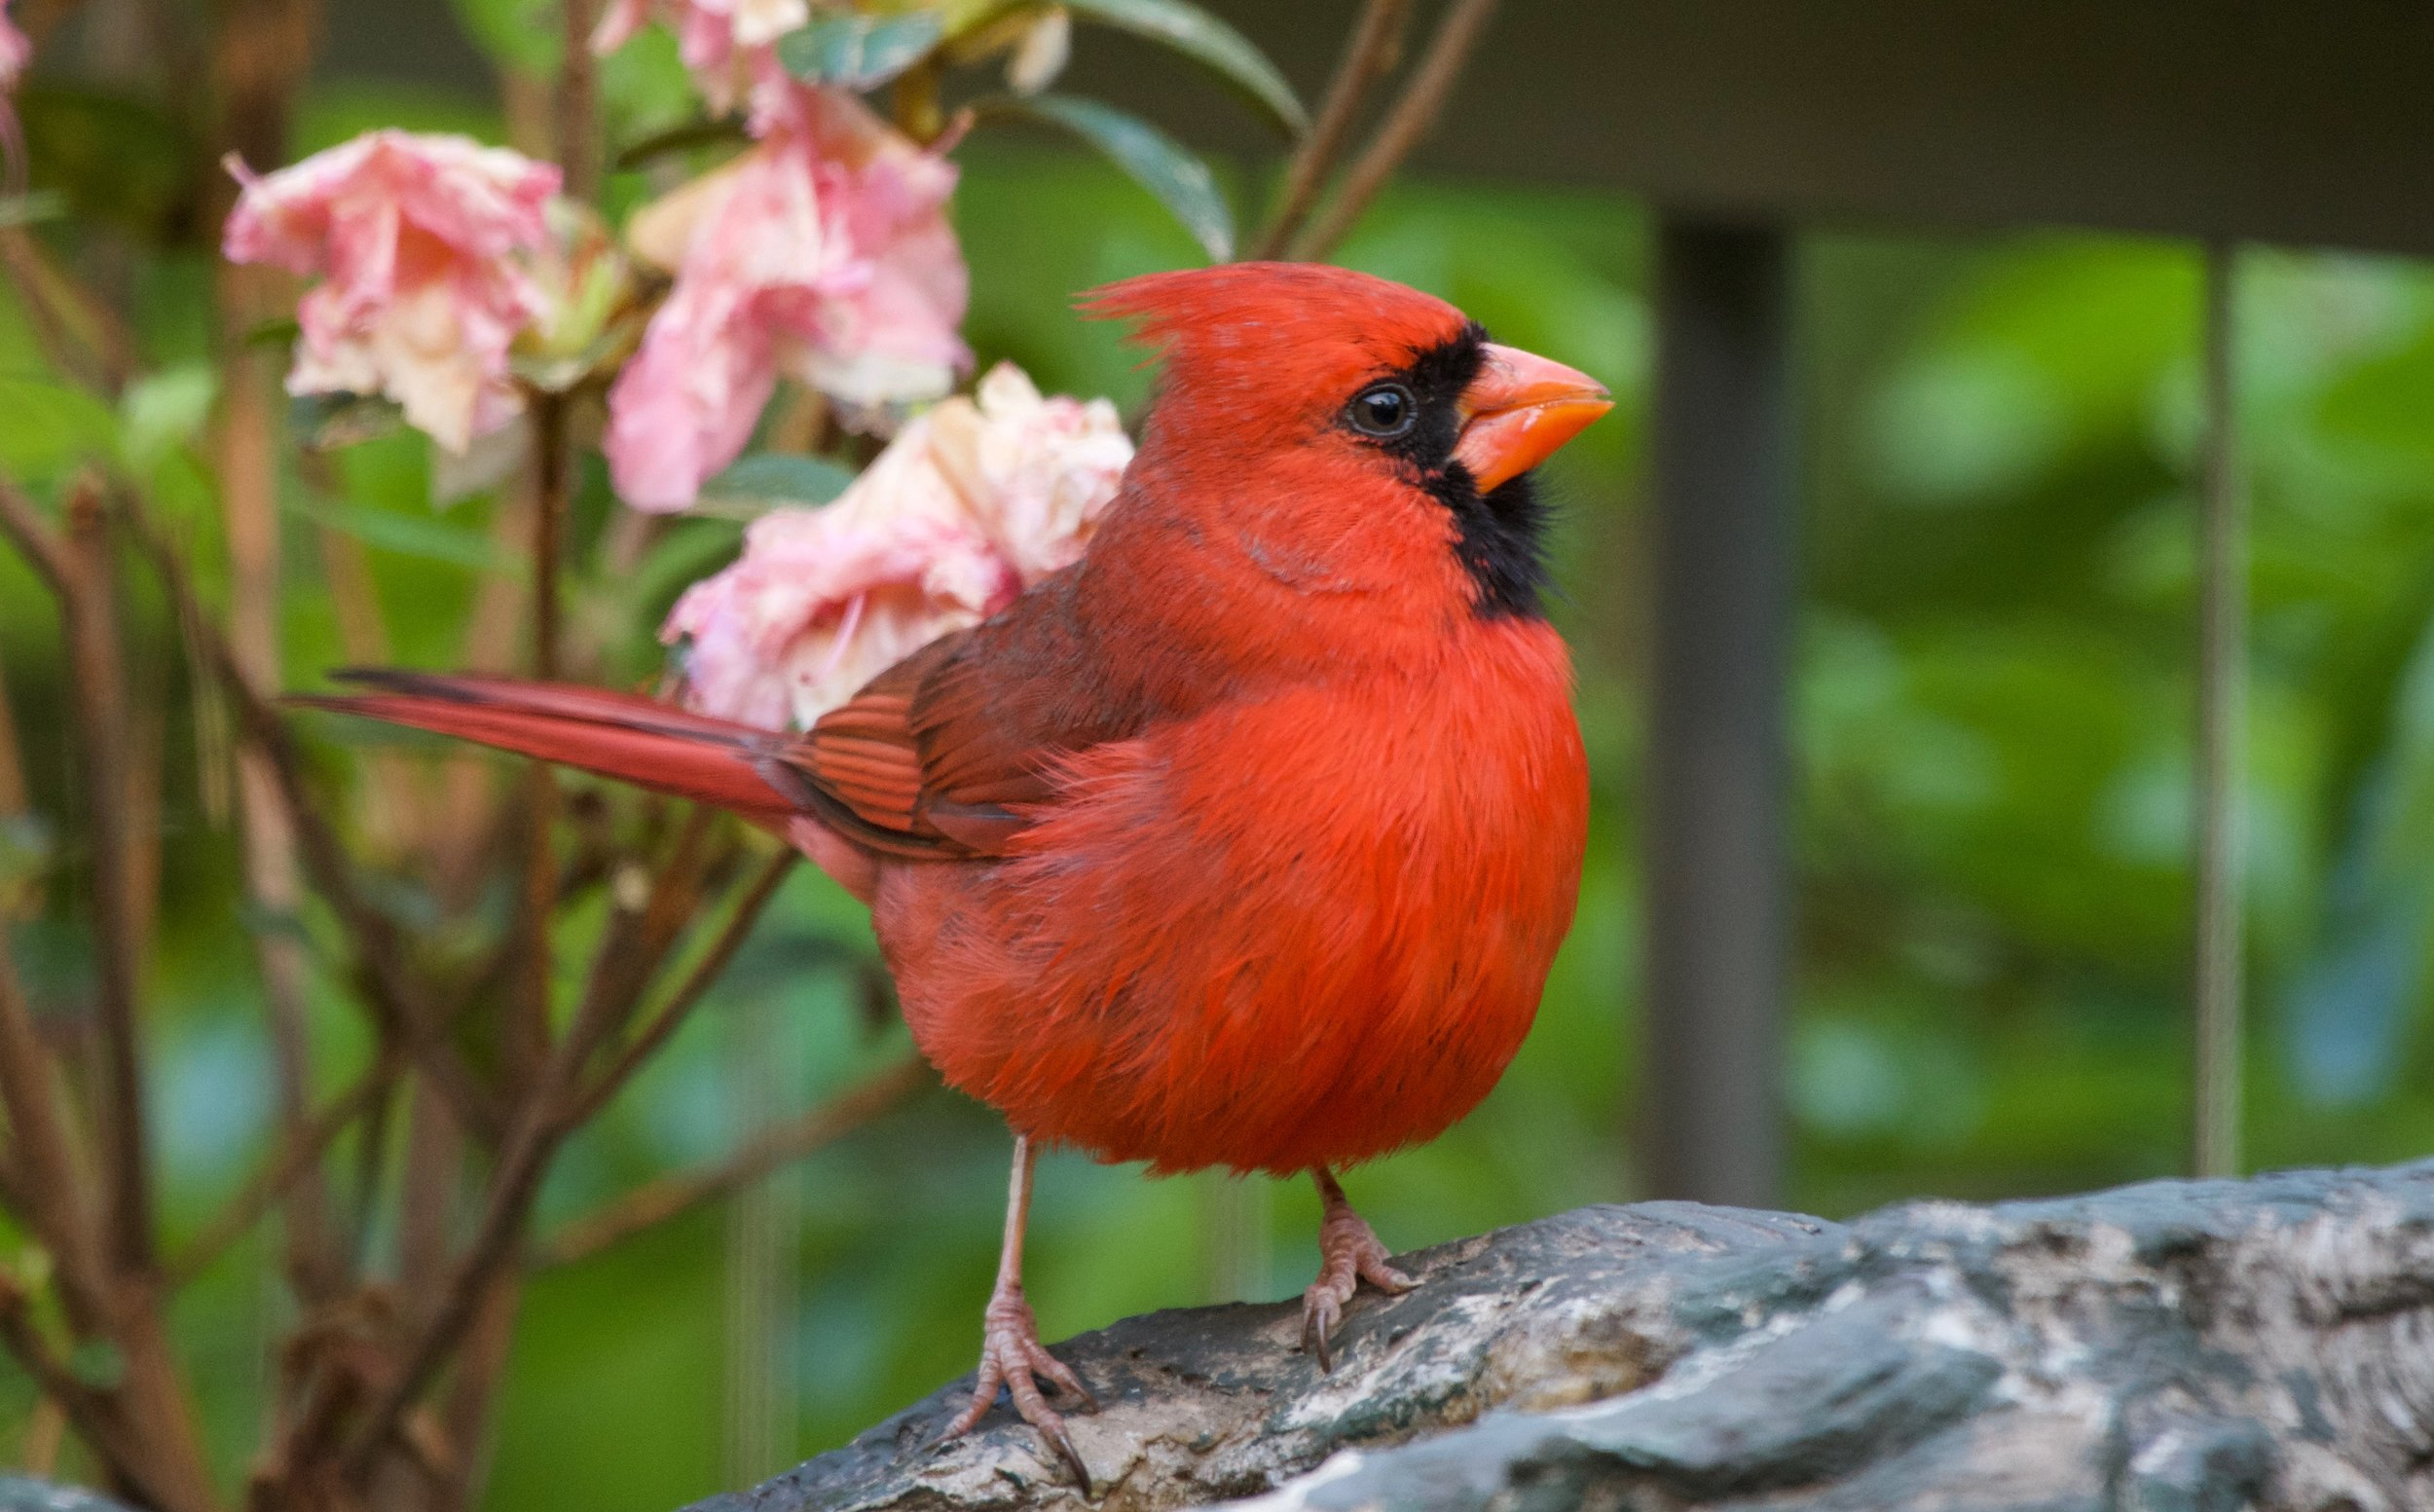 Northern Cardinal after molting